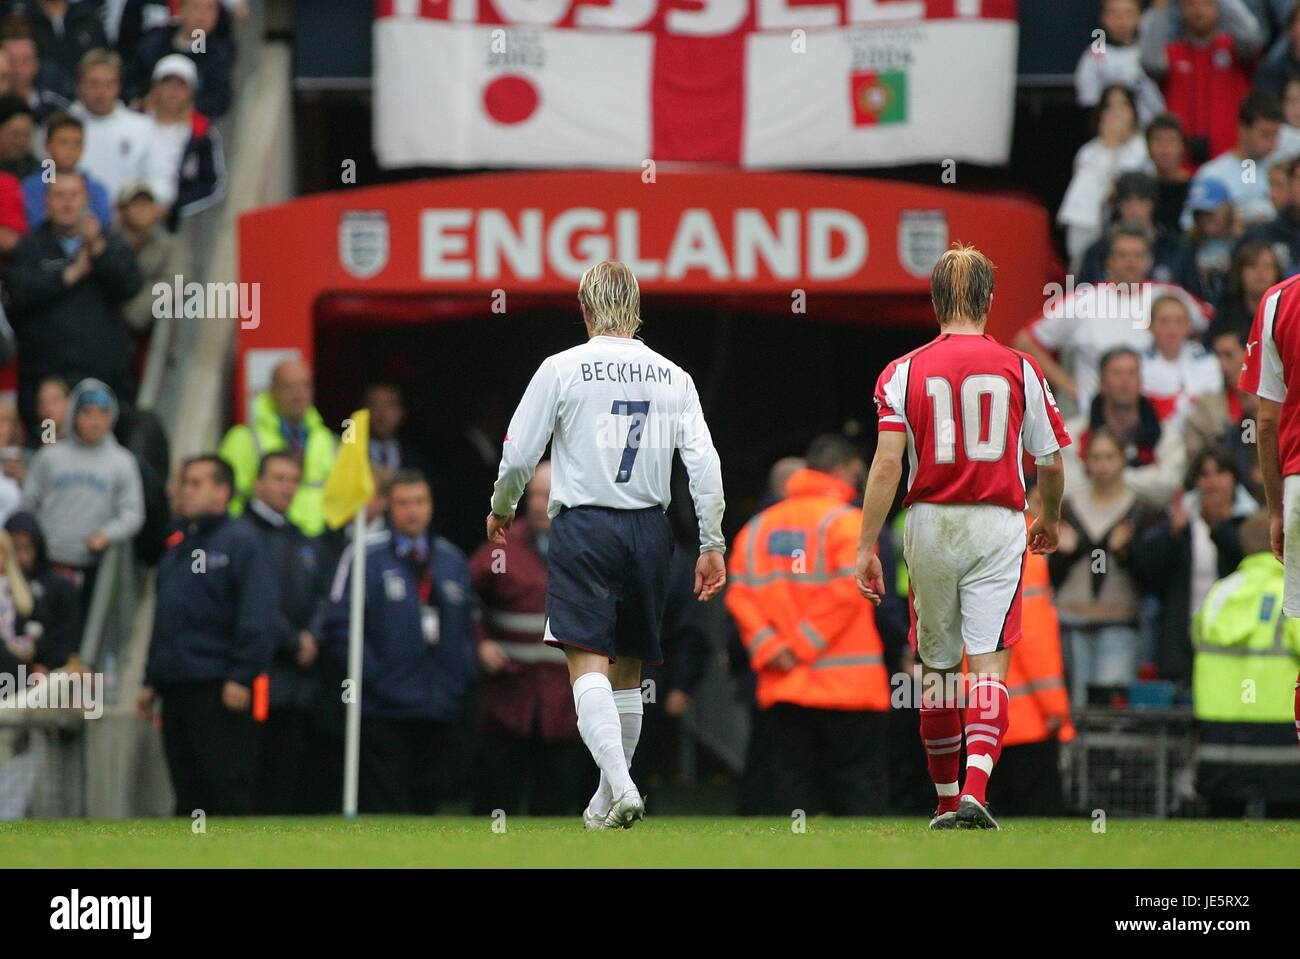 DAVID BECKHAM IS SENT OFF ENGLAND V AUSTRIA 08 October 2005 - Stock Image